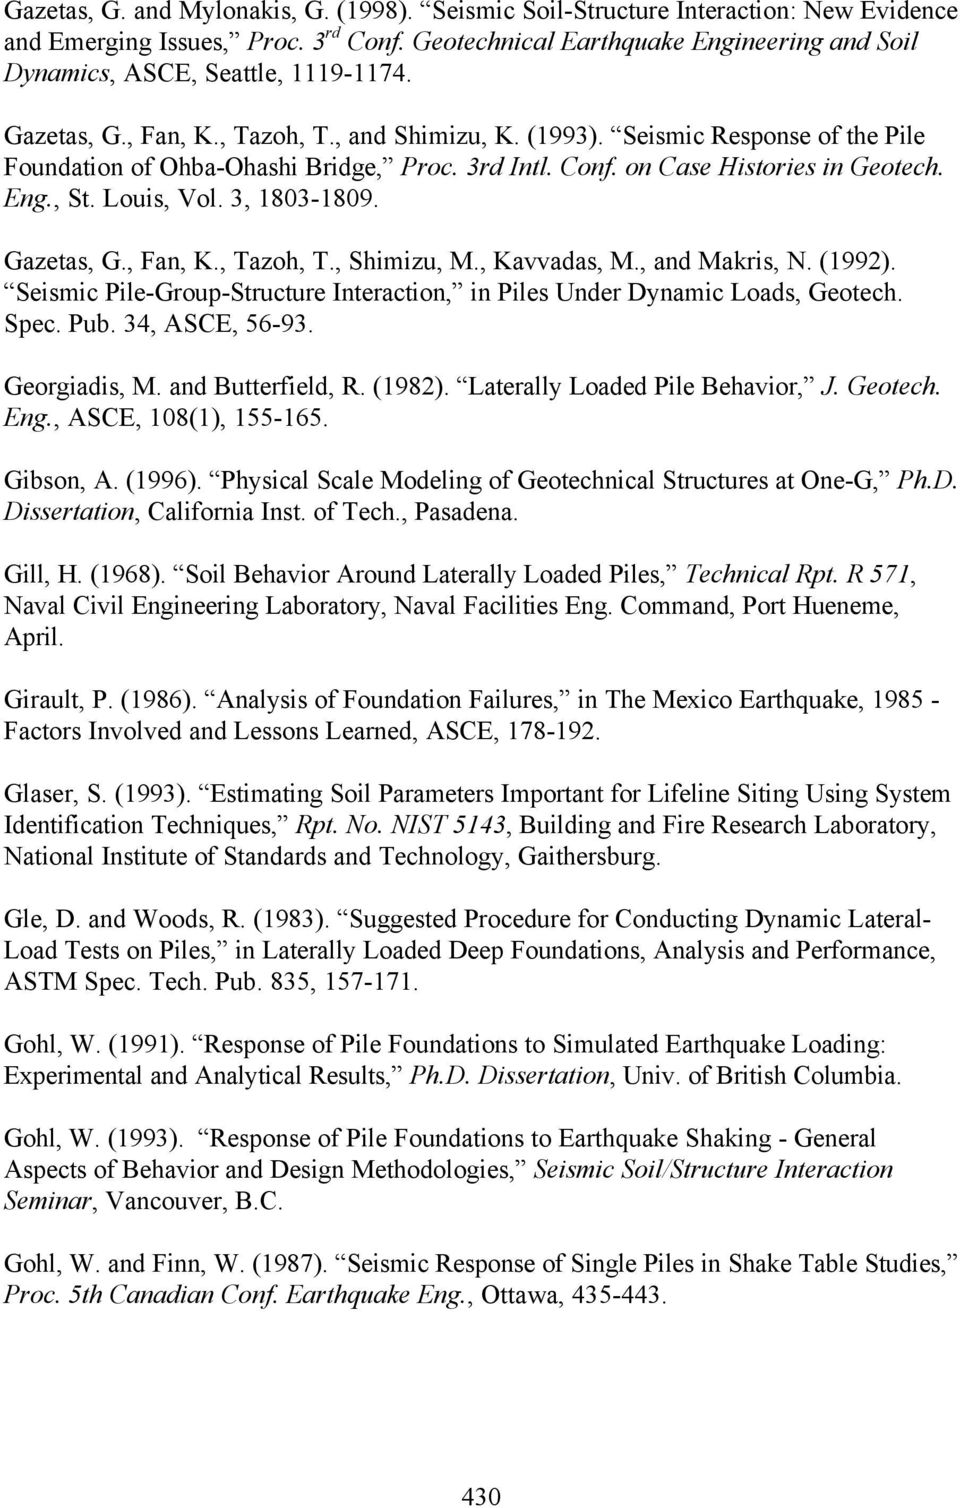 Seismic Response of the Pile Foundation of Ohba-Ohashi Bridge, Proc. 3rd Intl. Conf. on Case Histories in Geotech. Eng., St. Louis, Vol. 3, 1803-1809. Gazetas, G., Fan, K., Tazoh, T., Shimizu, M.